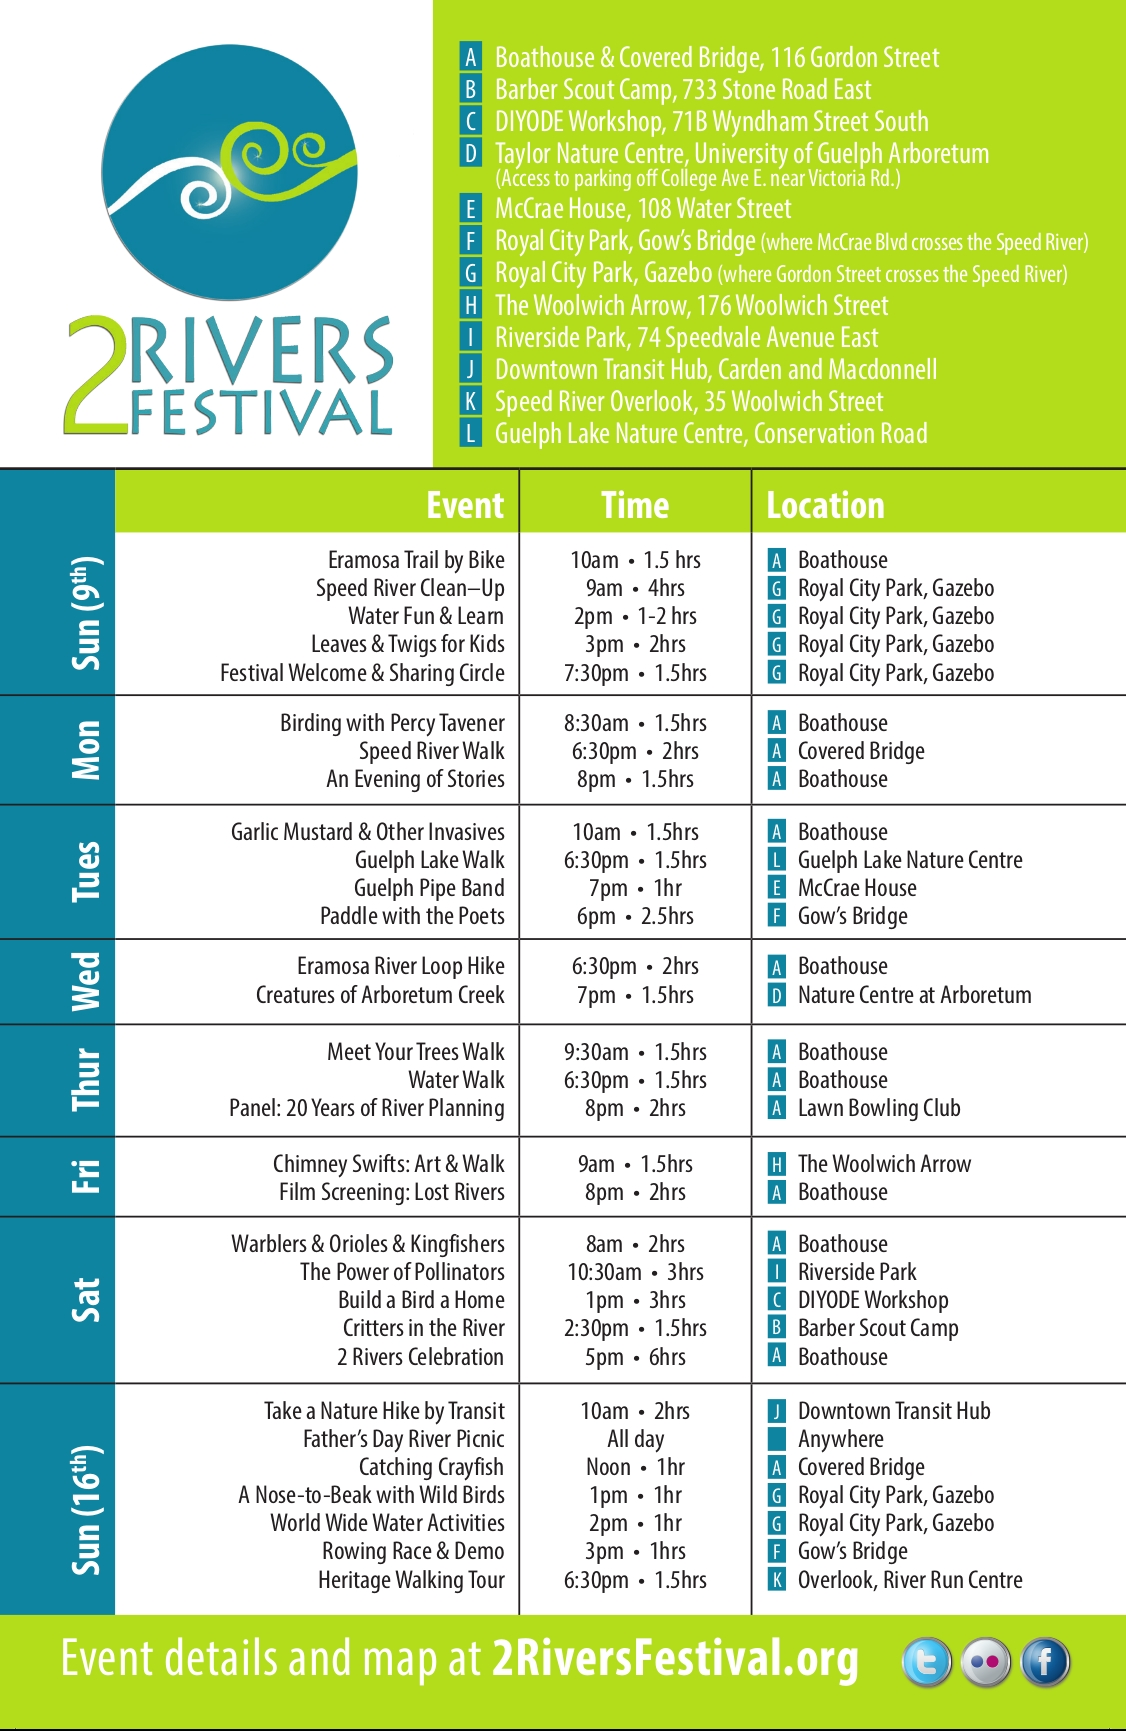 2Rivers2013_program.jpg